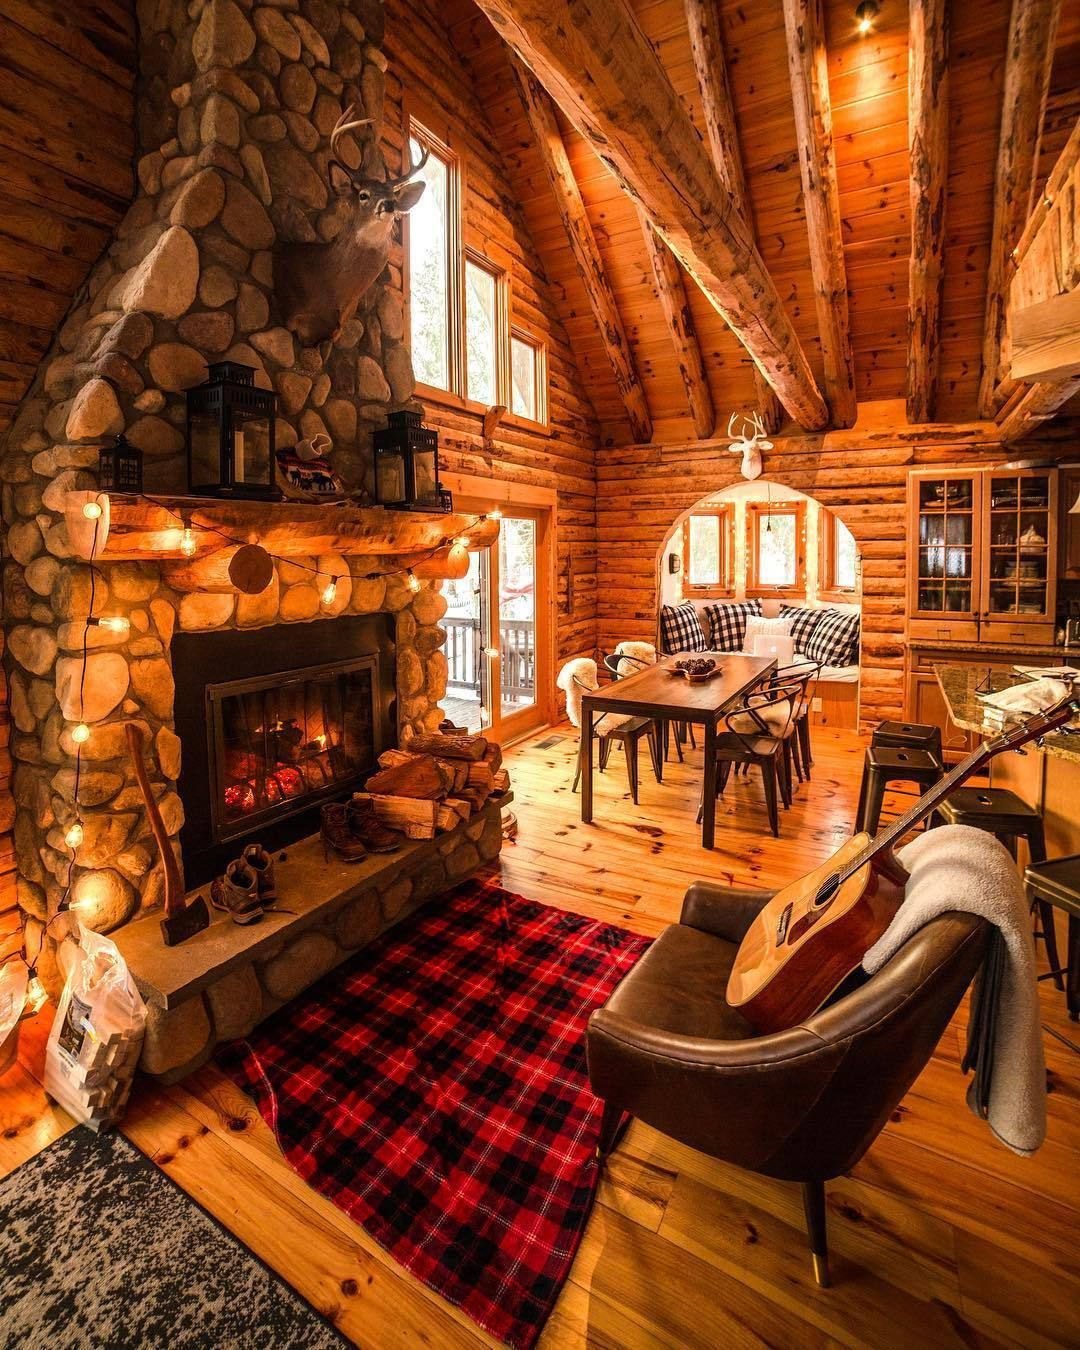 Cozy Winter Fall Guitar Fireplace Cabin Cozycabin Cottage